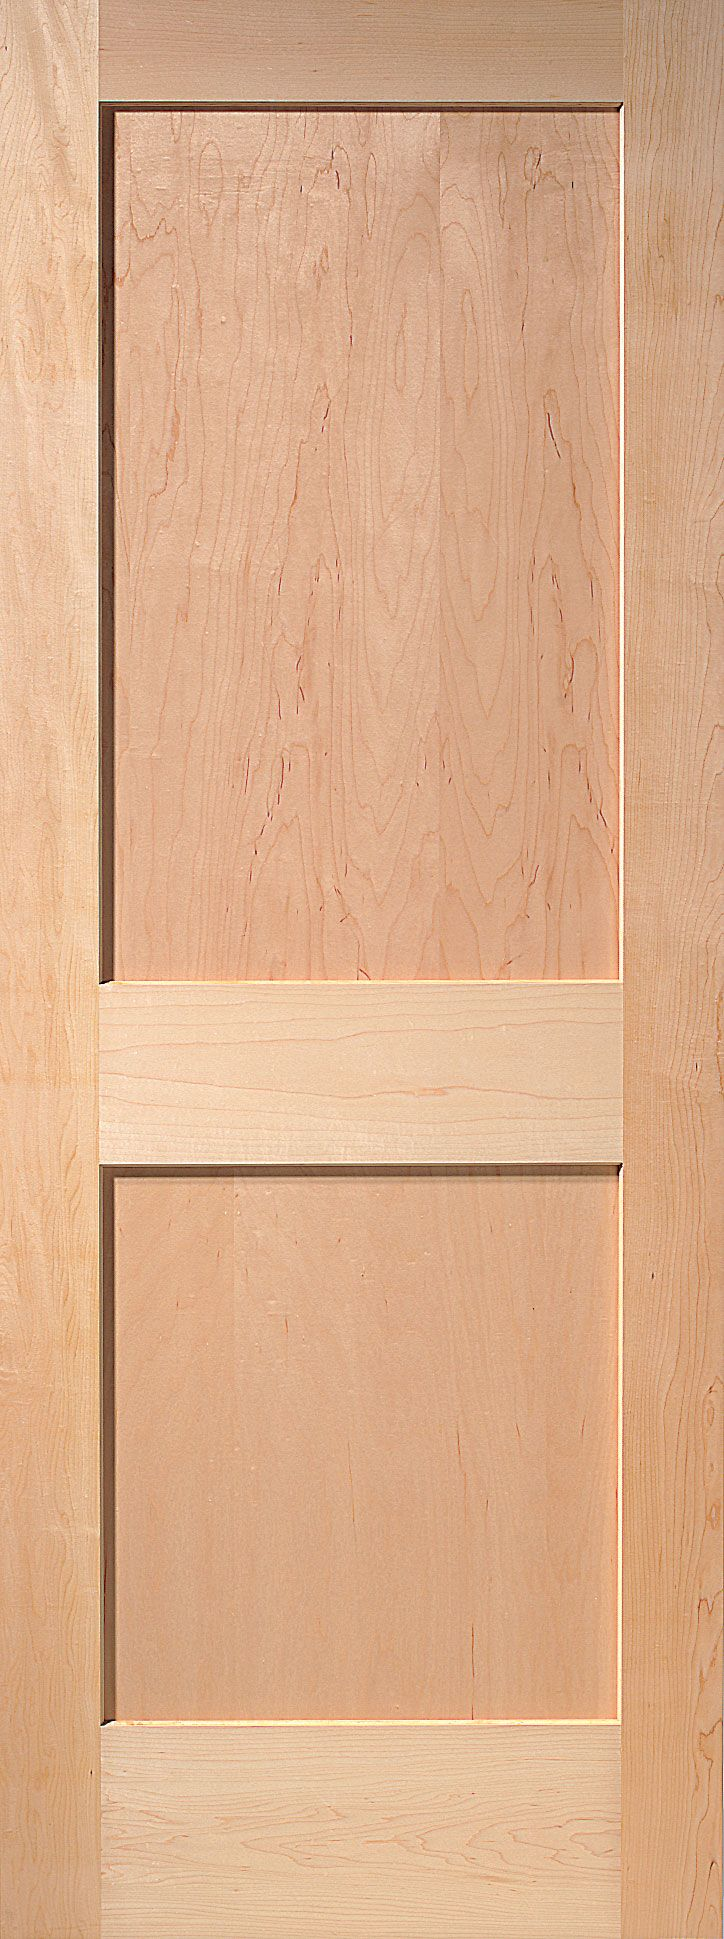 Flat 2 panel maple door lgg doors pinterest wood interior flat panel solid wood interior doors every dwelling may have interior doors unless you feel doors and intend on residing planetlyrics Image collections